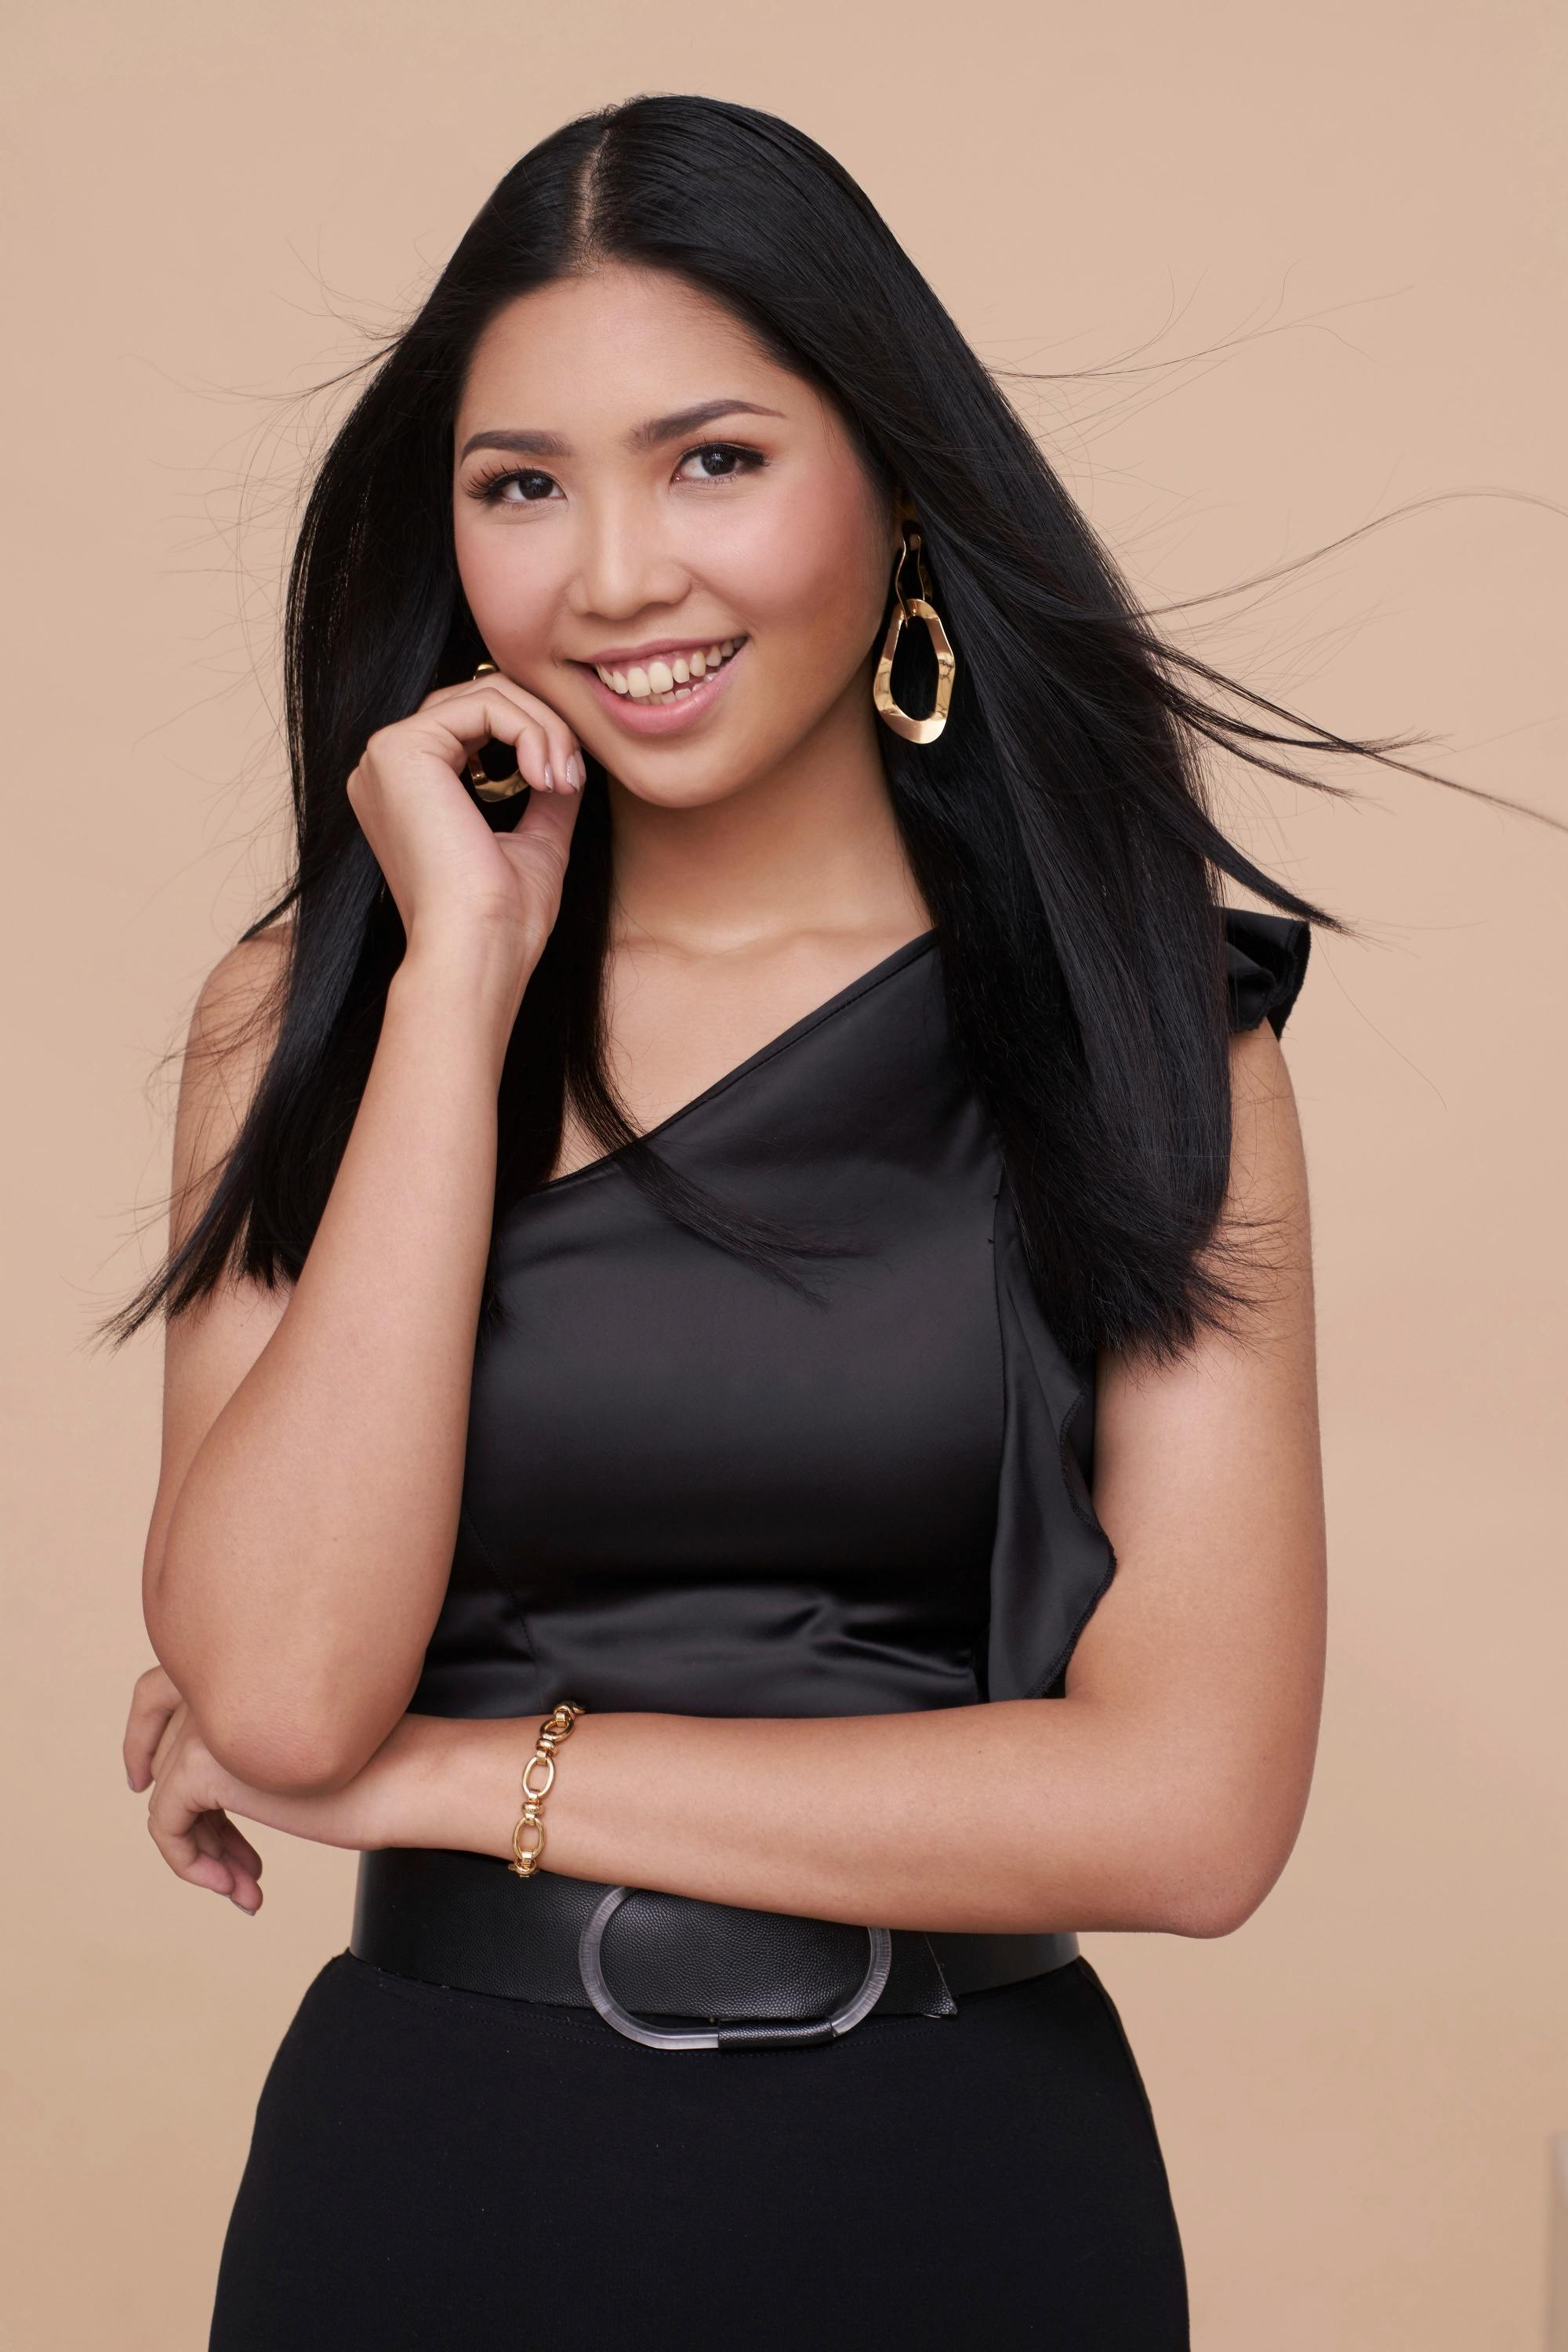 Keratin condiioners: Asian woman with wind-blown long black straight hair wearing a black dress